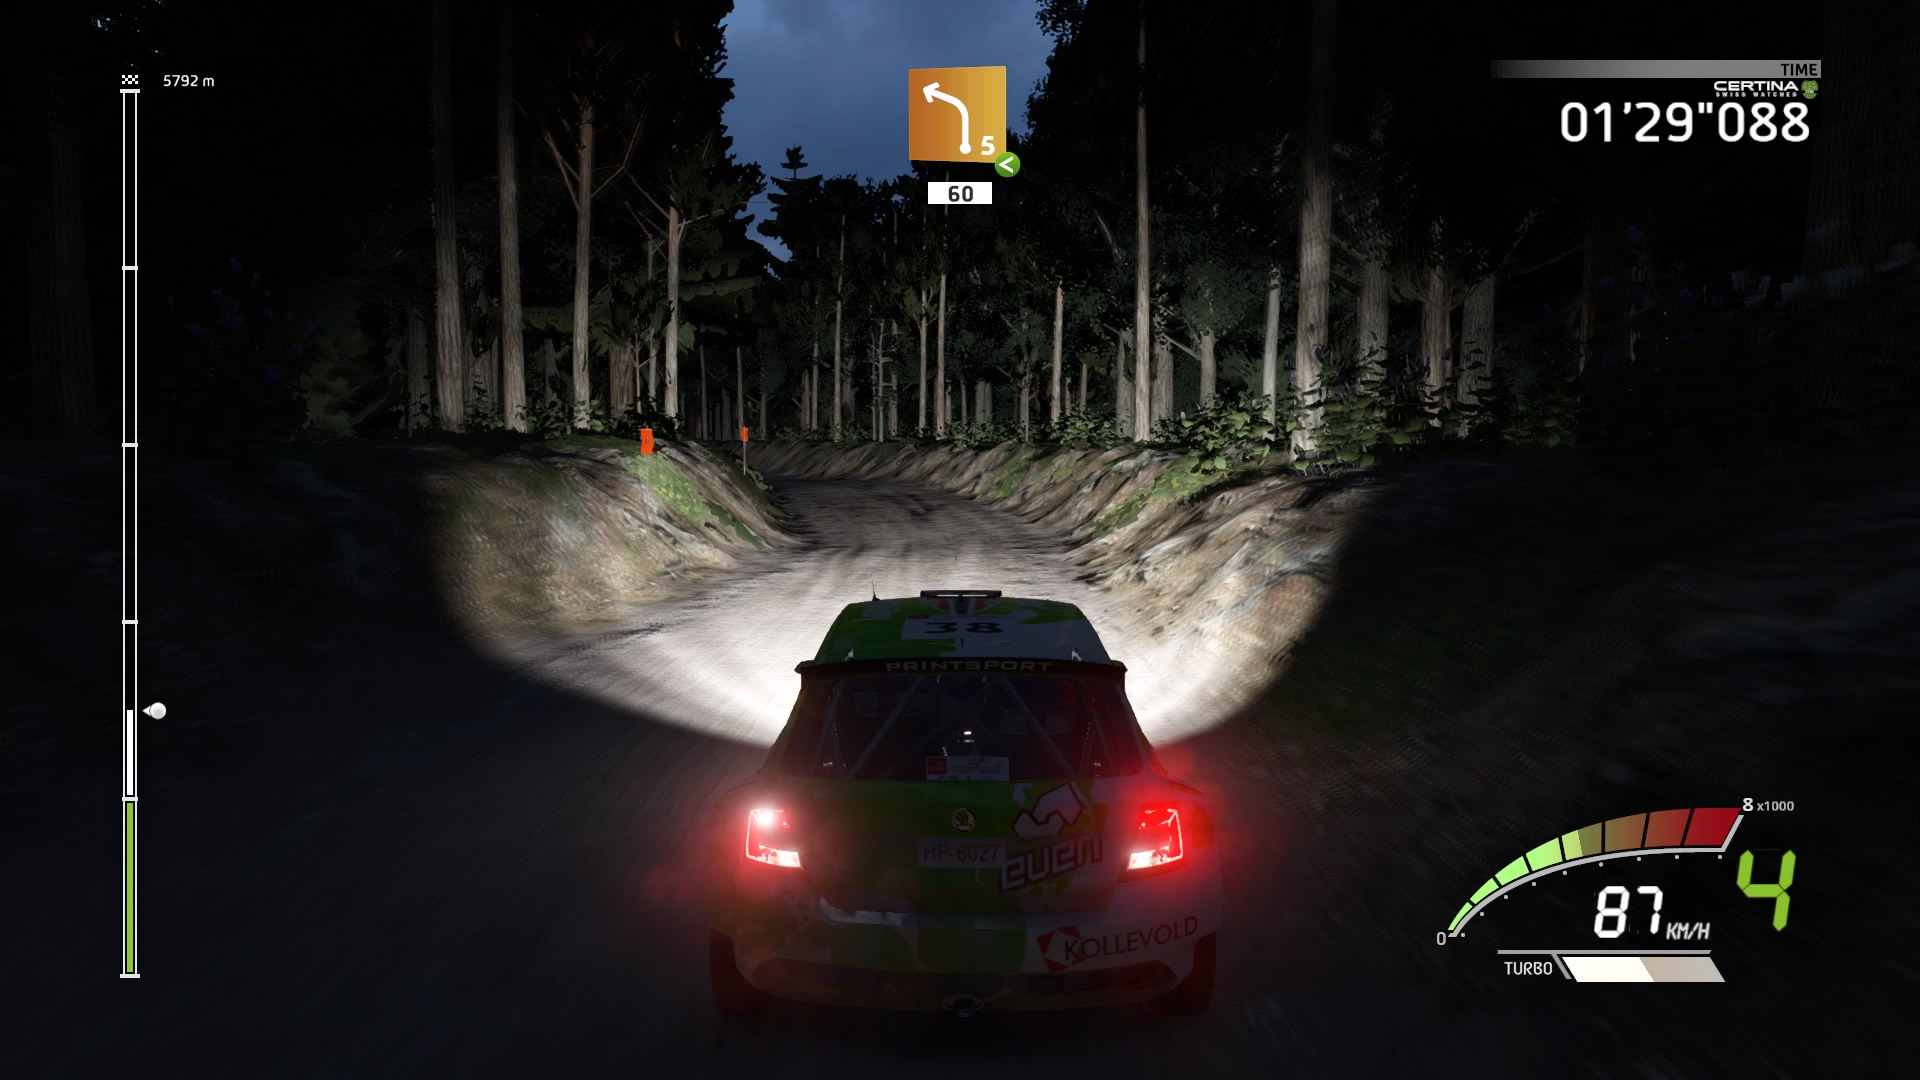 Much Like Last Years Game The Stages Look A Little Rugged But Lighting Does Its Damnedest To Give Each Stage Some Scenic Beauty